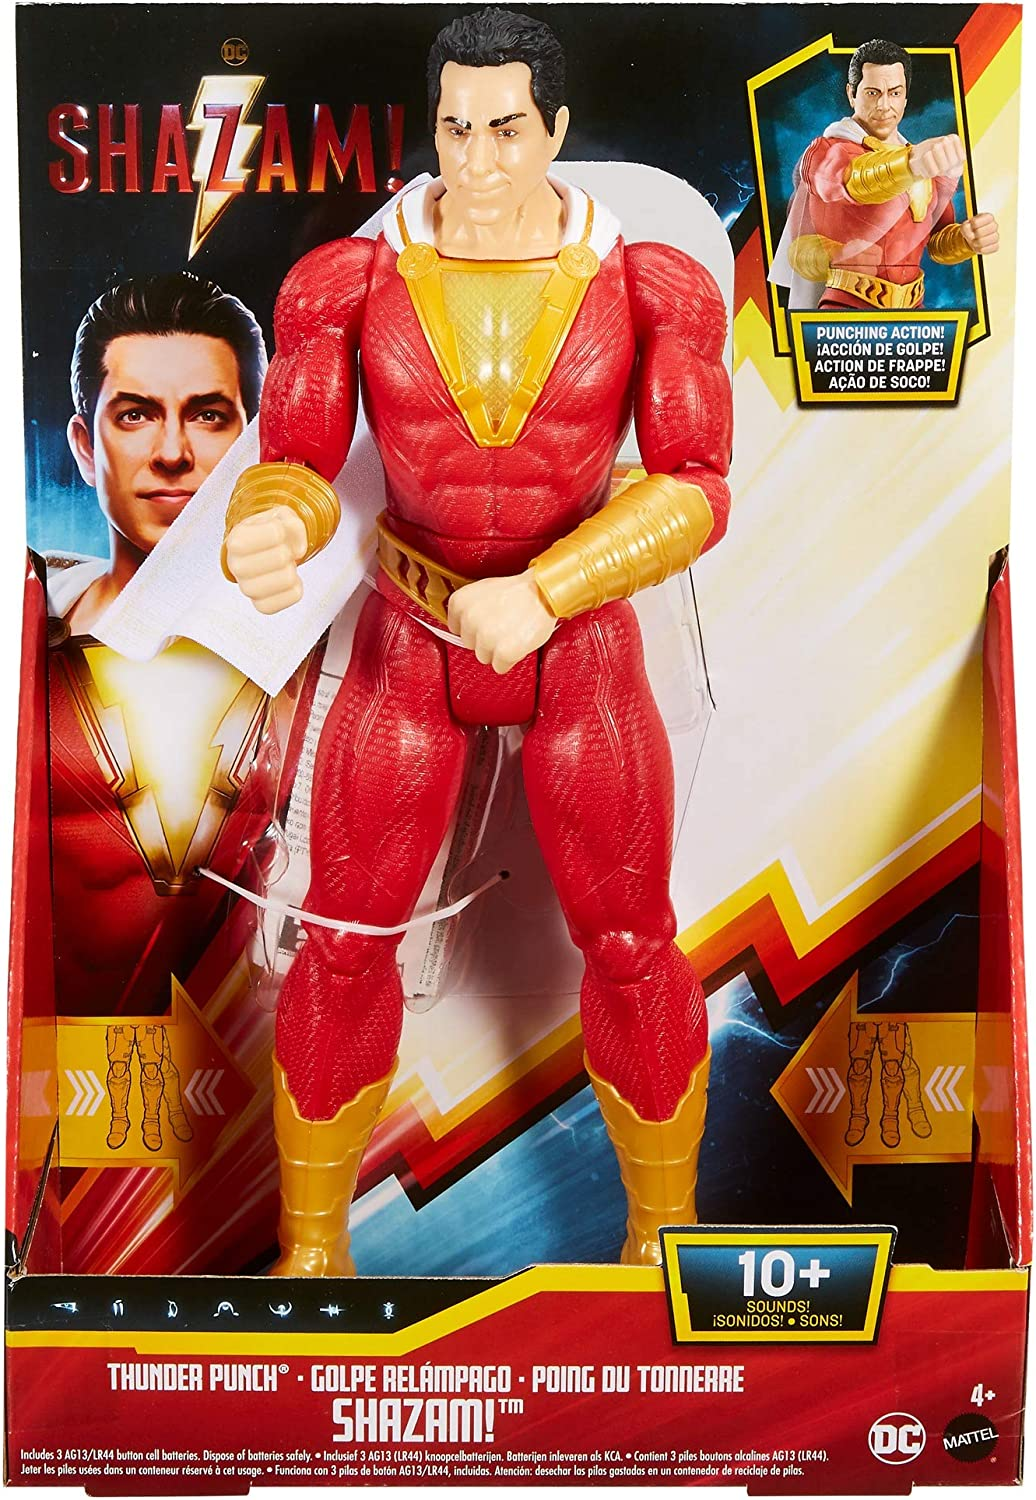 "Playsets DC Comics Shazam Thunder Punch 12 Action Figure Toys /"" Games"